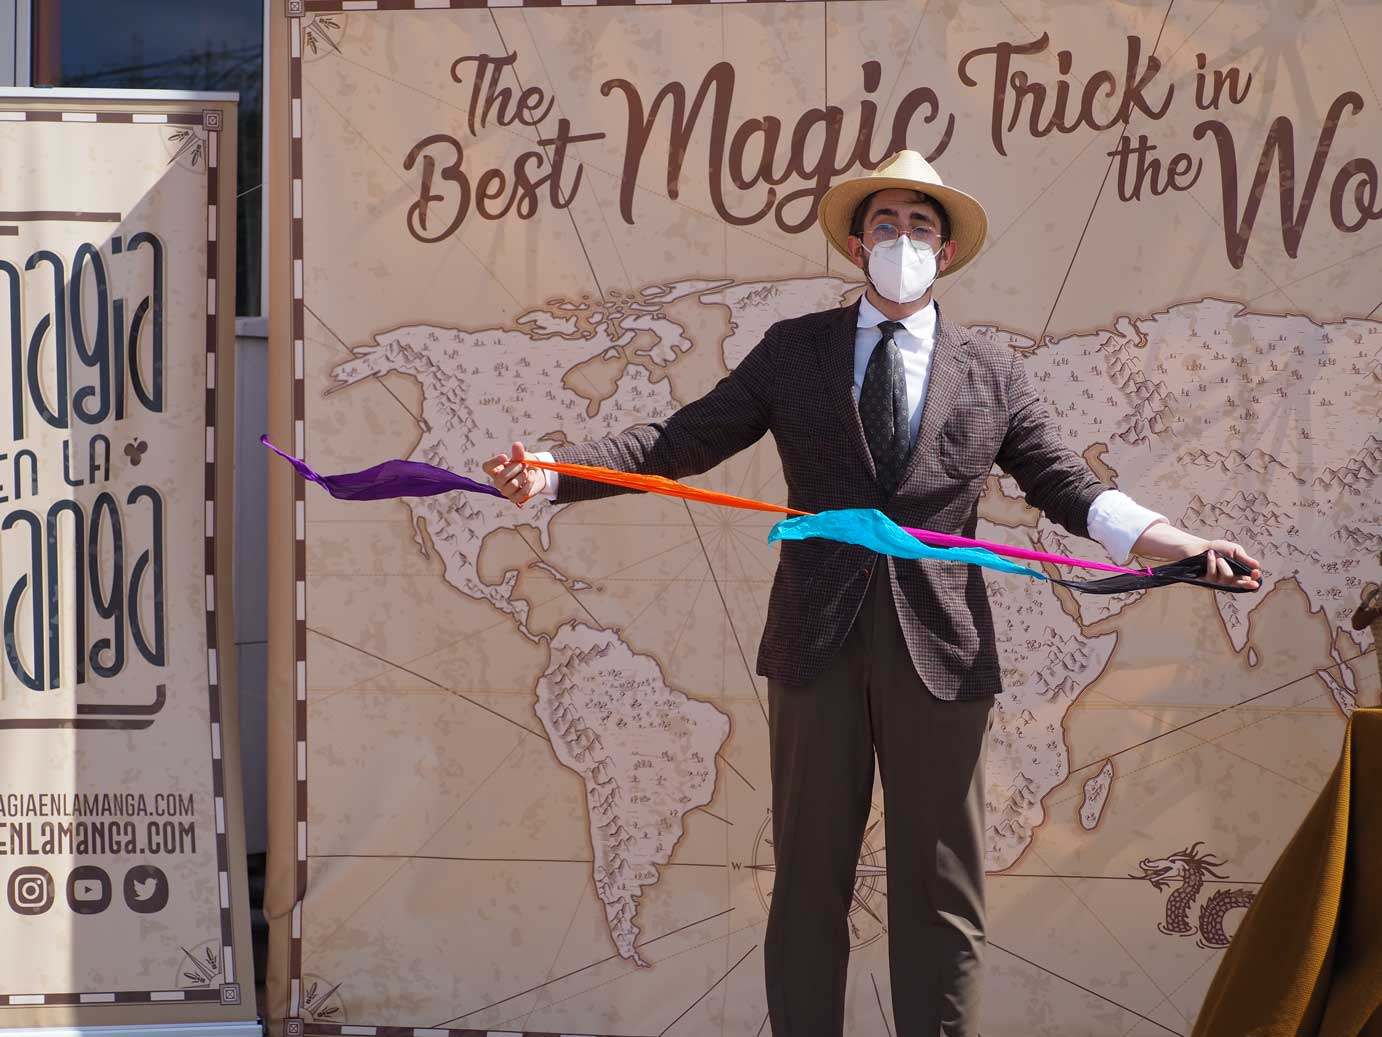 the-best-magic-trick-in-the-world-13